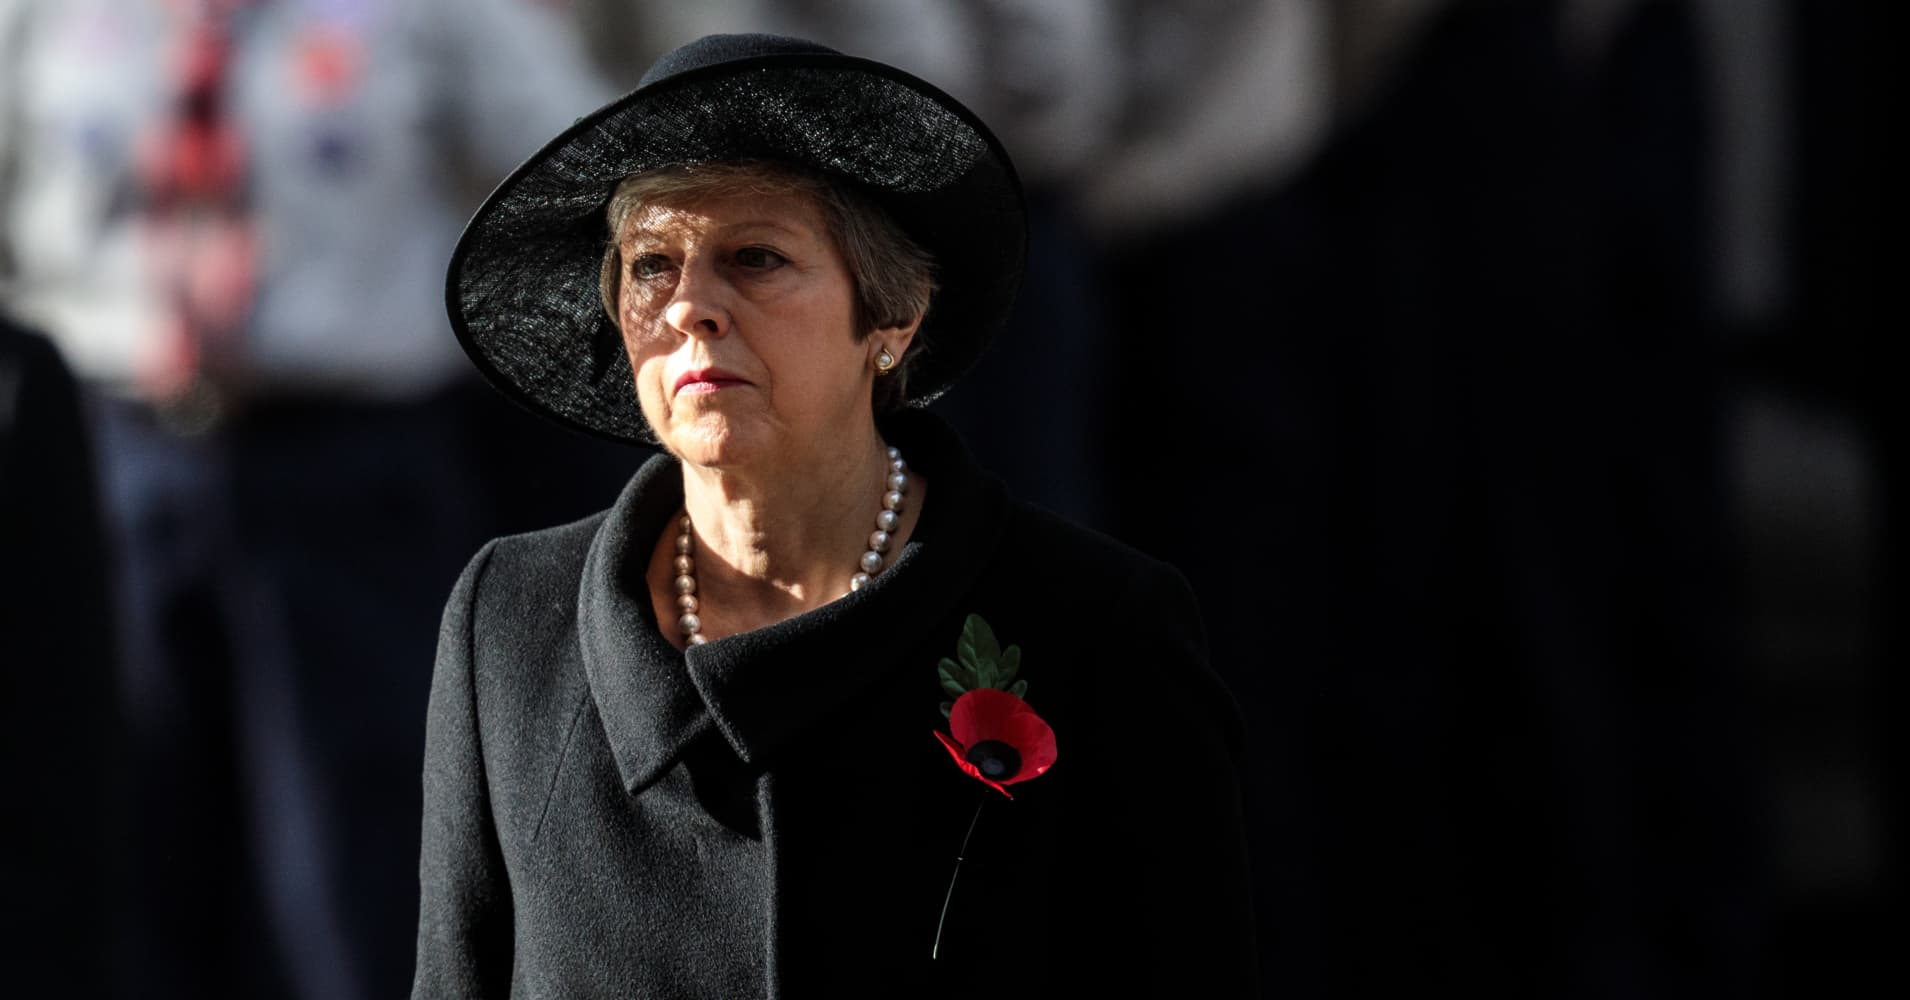 Brexit: All eyes are on Theresa May as pressure mounts within her own cabinet